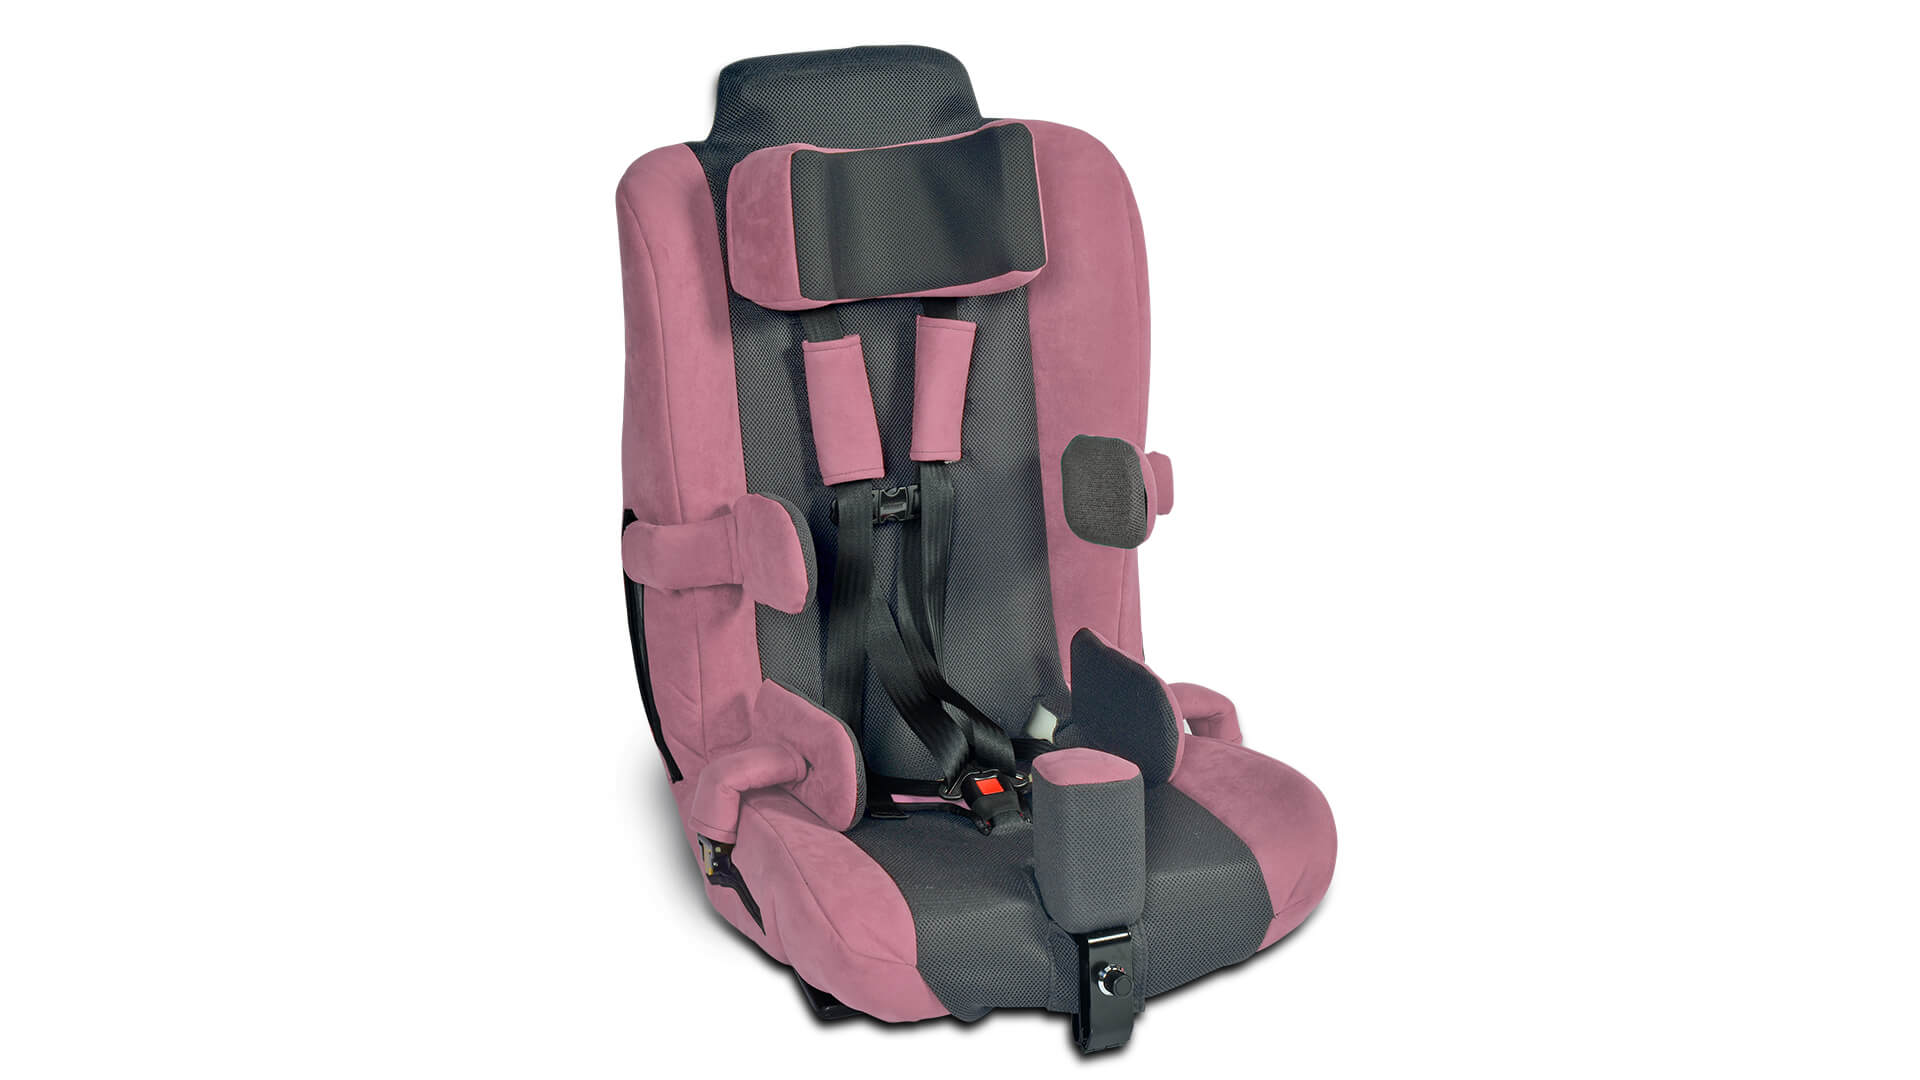 Spirit Plus Car Seat - Inspired by Drive